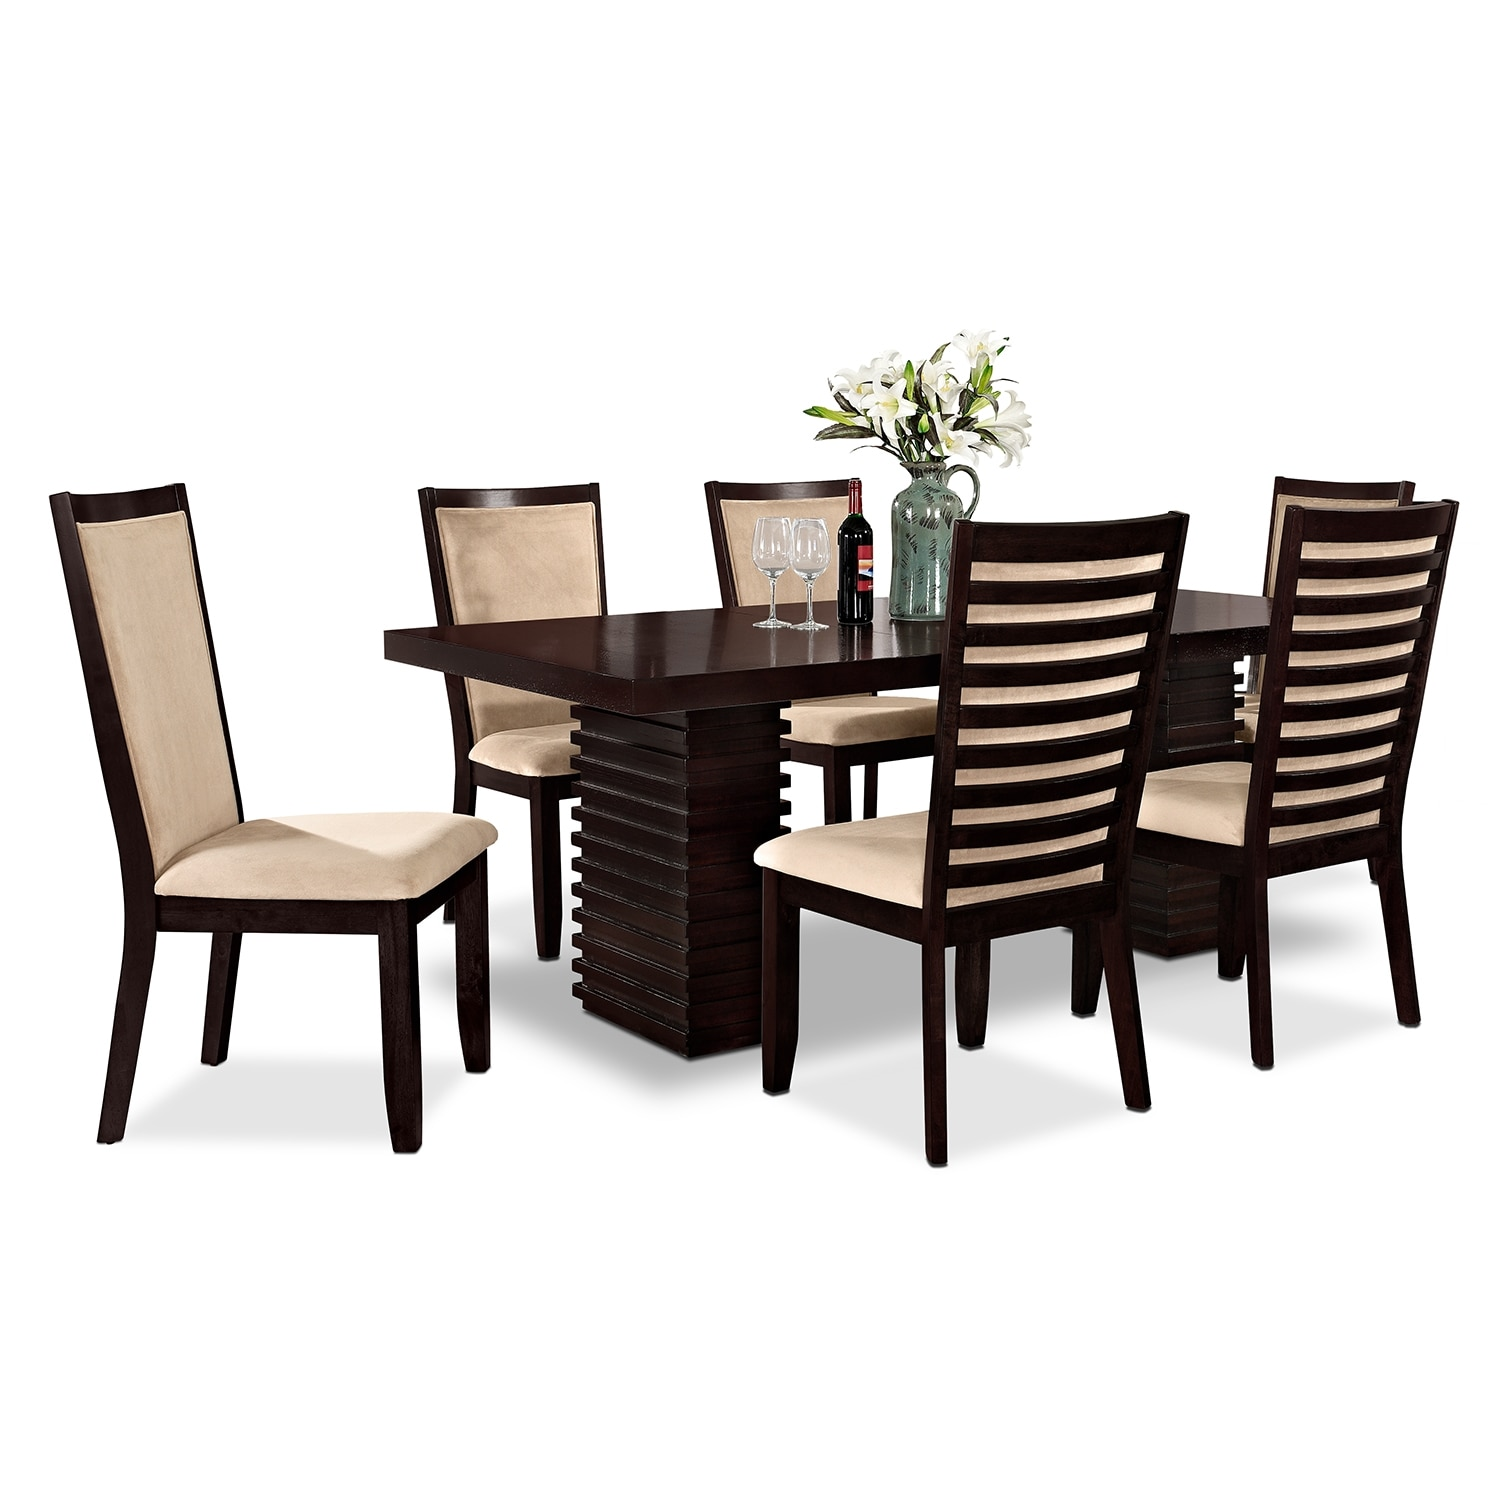 Paragon Table And 6 Chairs Merlot And Camel American Signature Furniture